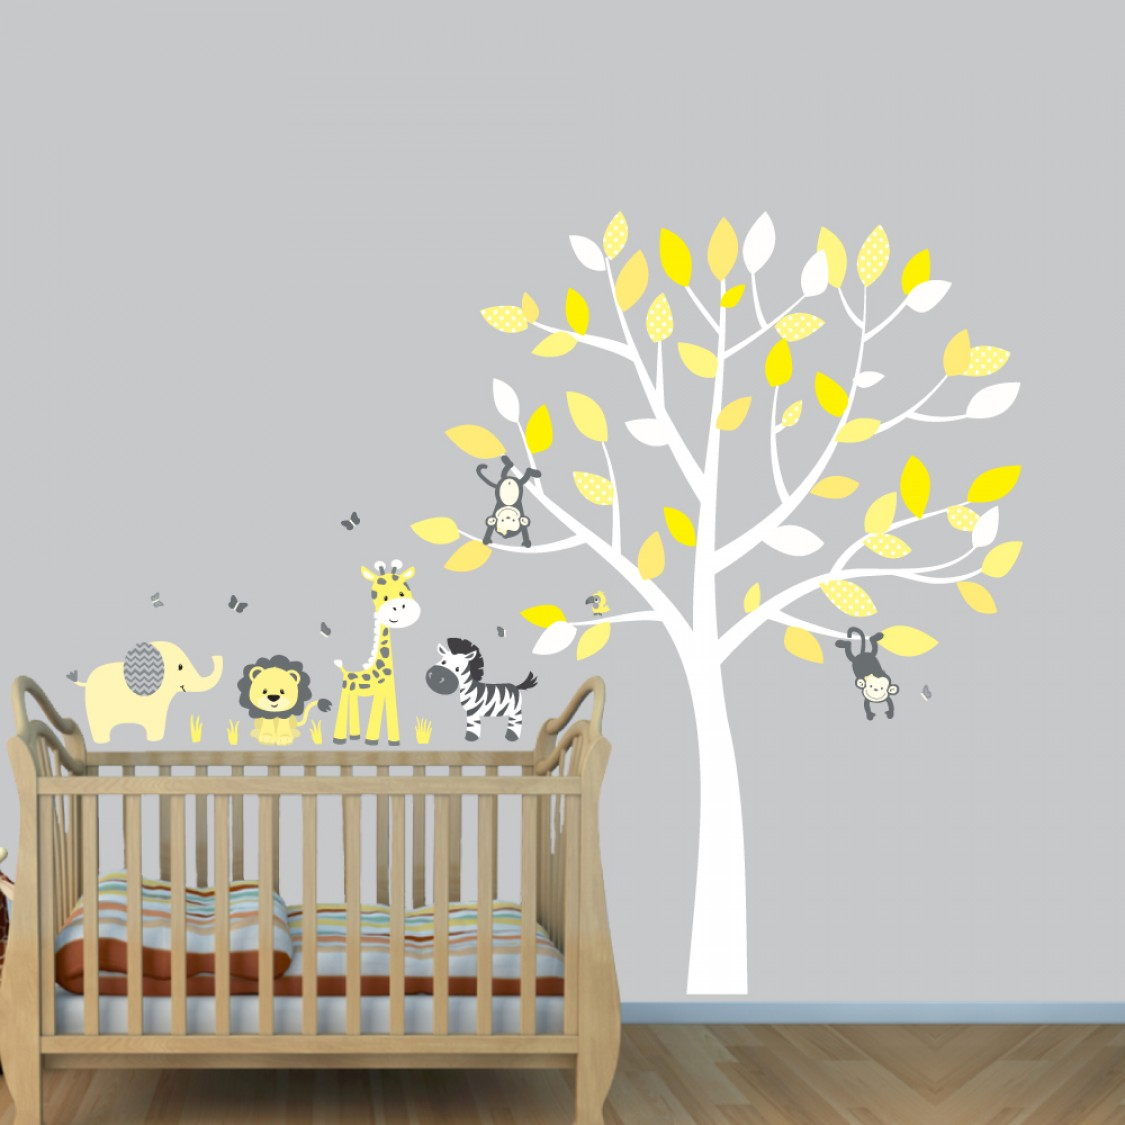 Gray Wall Decals With Jungle Animal Wall Art For Play Rooms